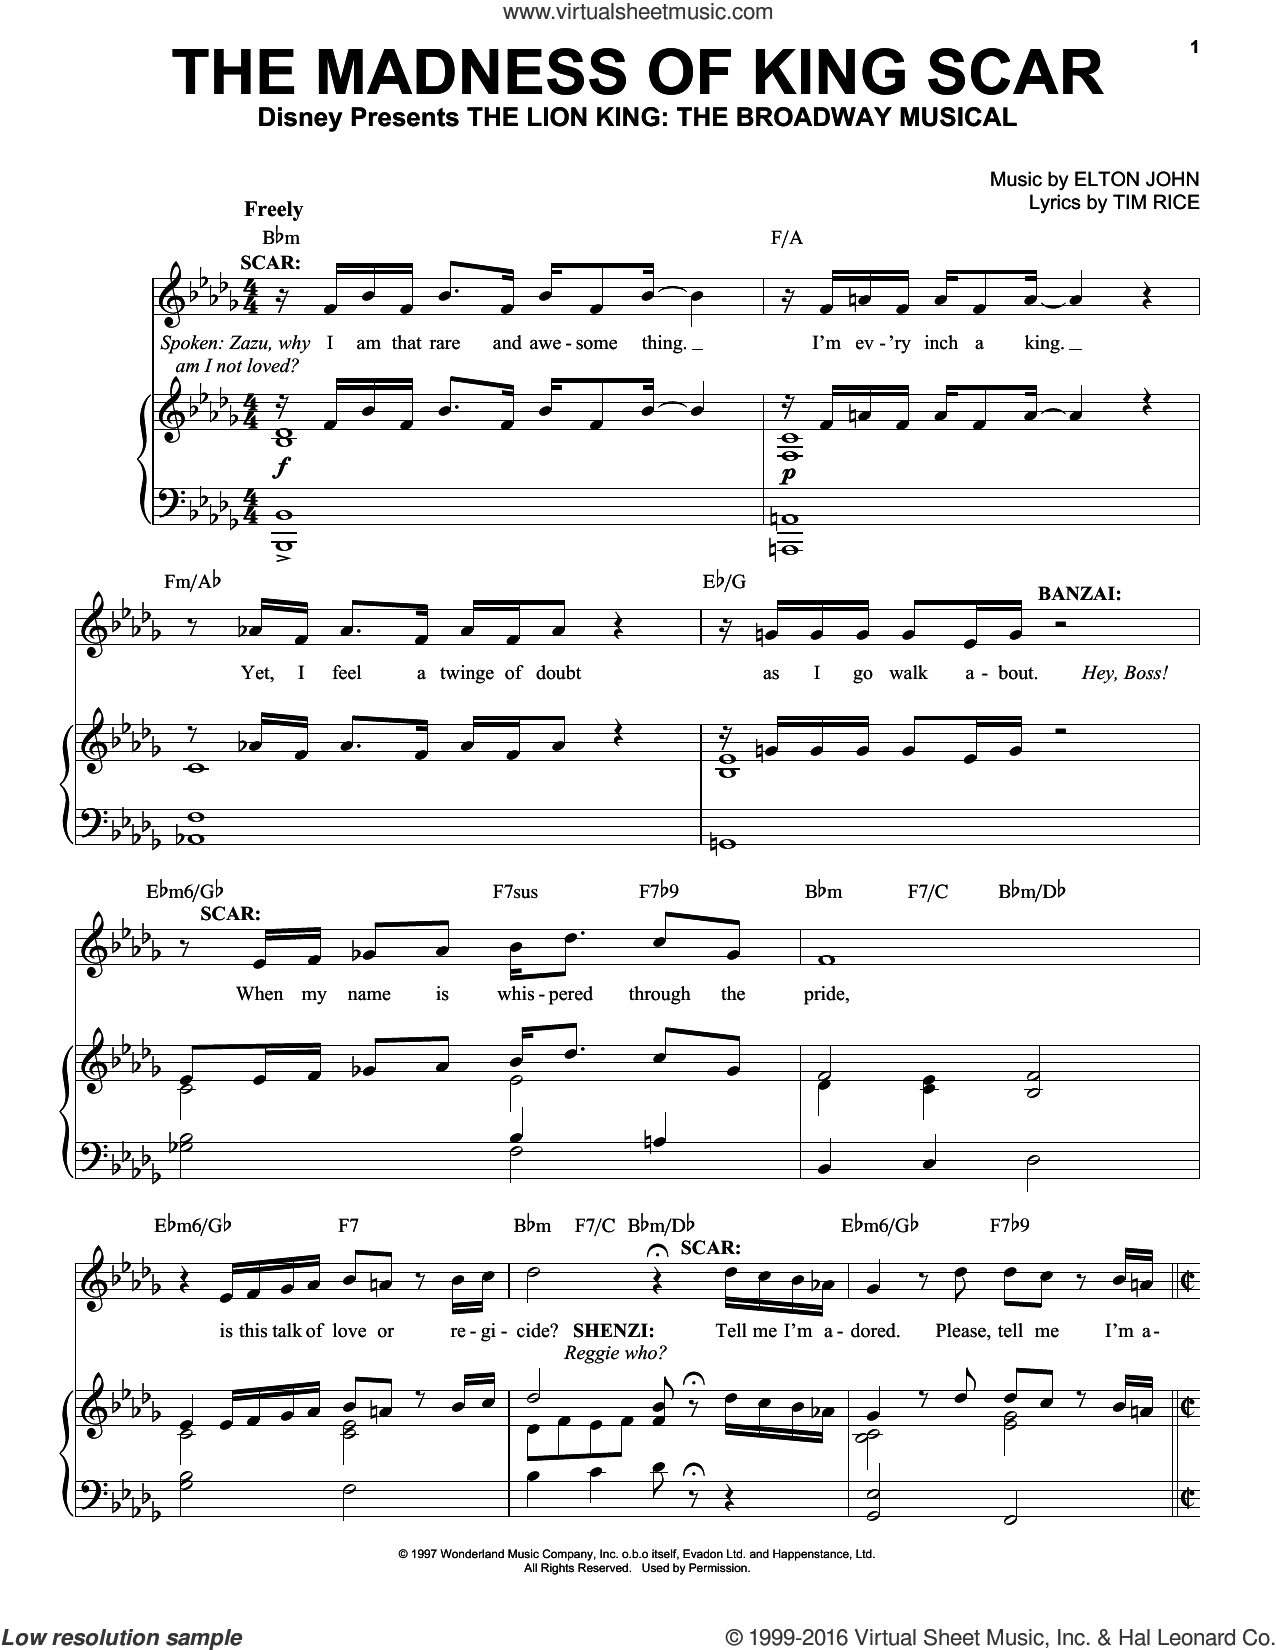 The Madness Of King Scar (from The Lion King: Broadway Musical) sheet music for voice, piano or guitar by Elton John and Tim Rice, intermediate skill level